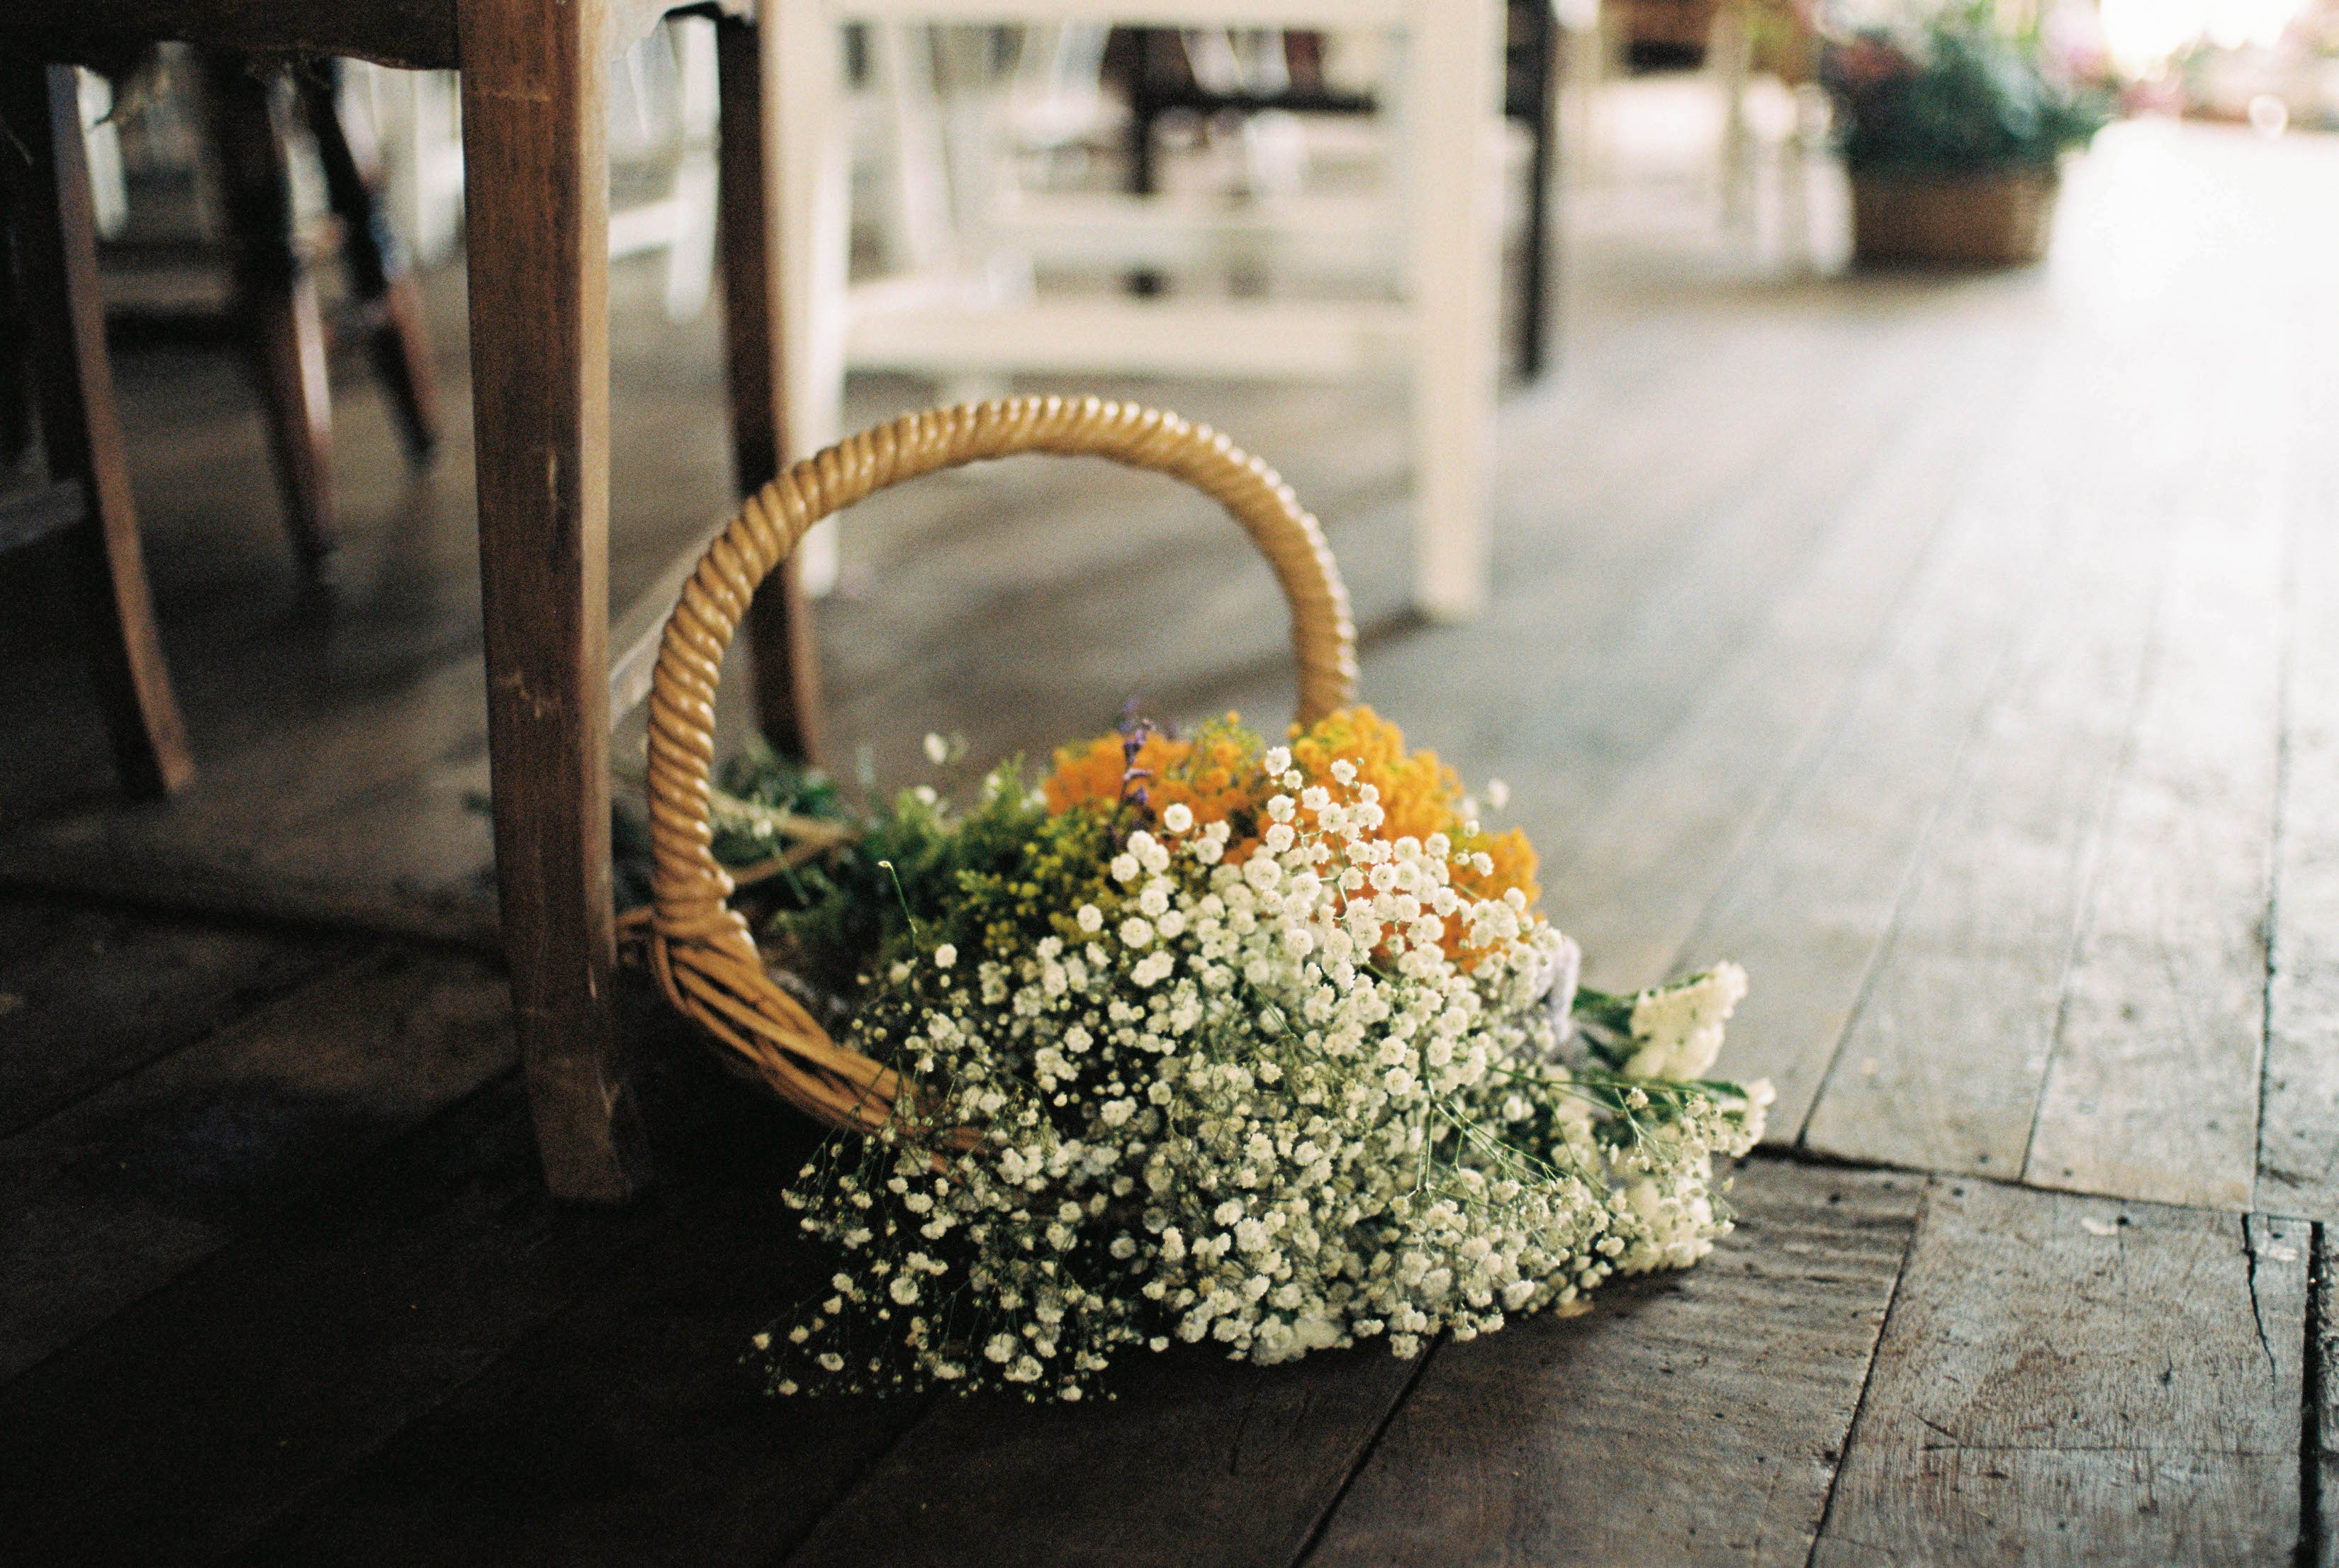 A photo of a basket of flowers decorating a Shearing Shed in Bridgetown for a wedding ceremony taken by Rhianna May Destination Wedding Photography